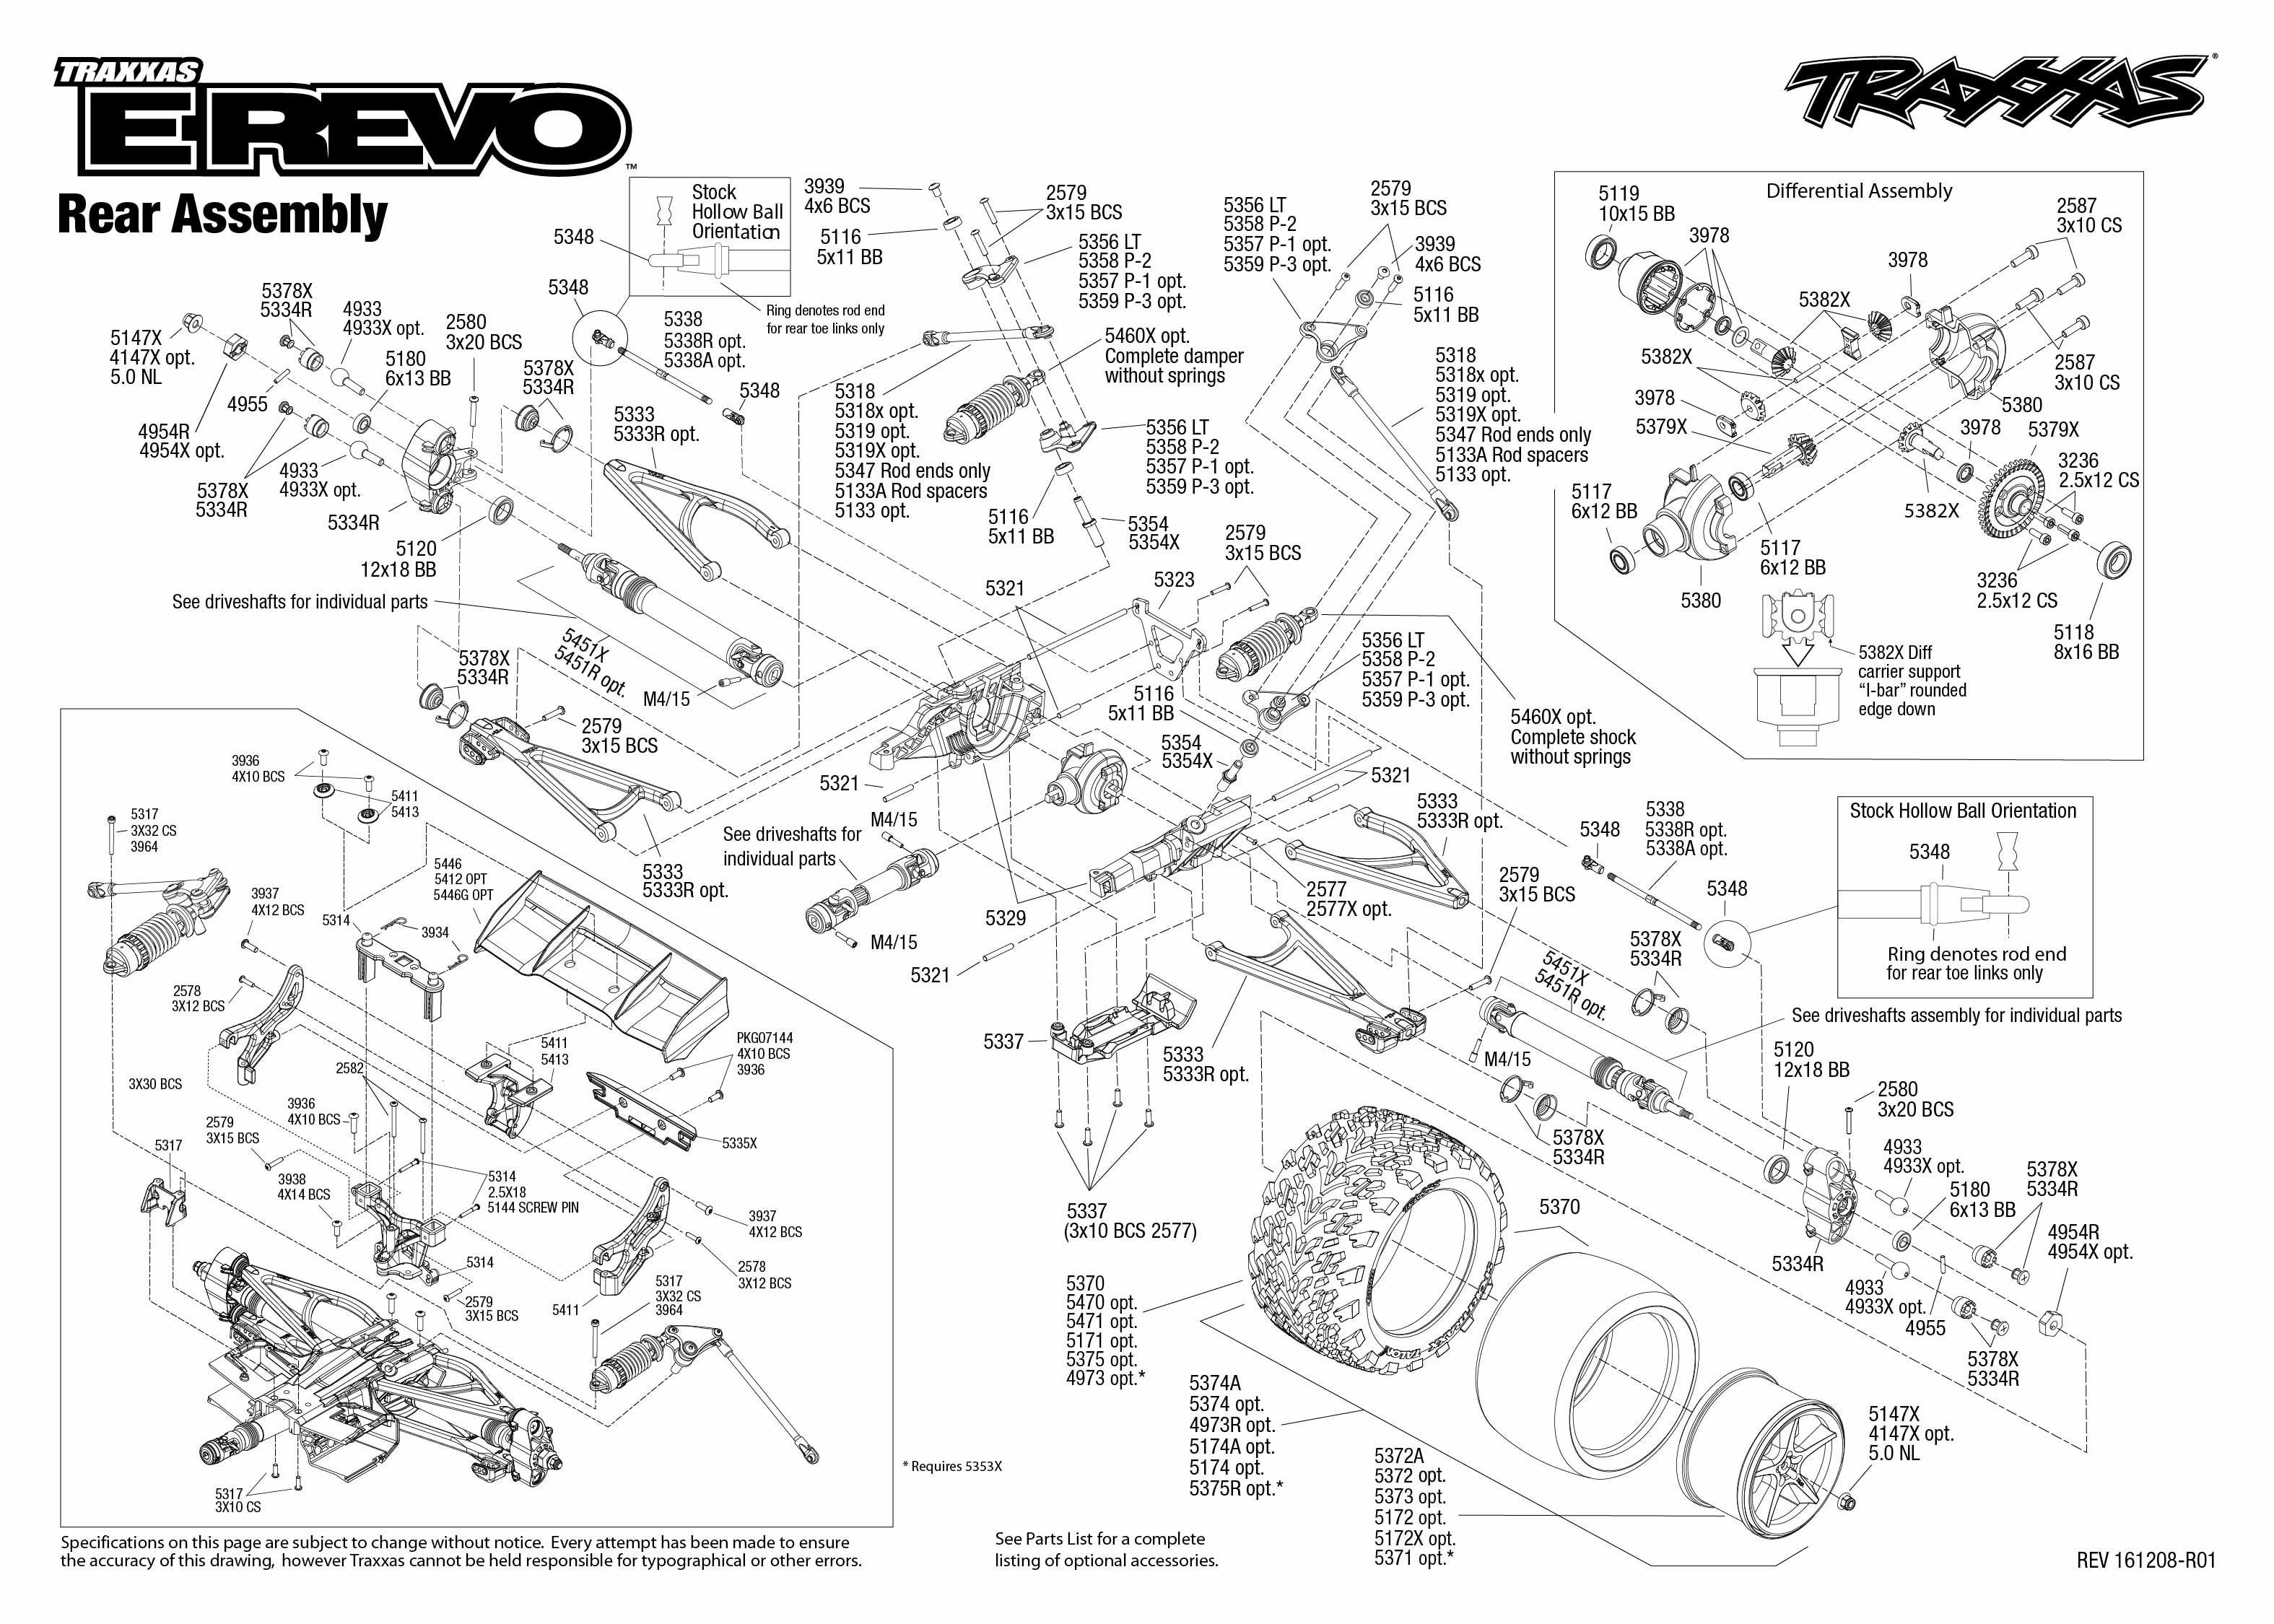 Outstanding traxxas stede 4x4 parts diagram ideas best image unusual revo 2 5 wiring diagram ideas electrical system block pooptronica Images